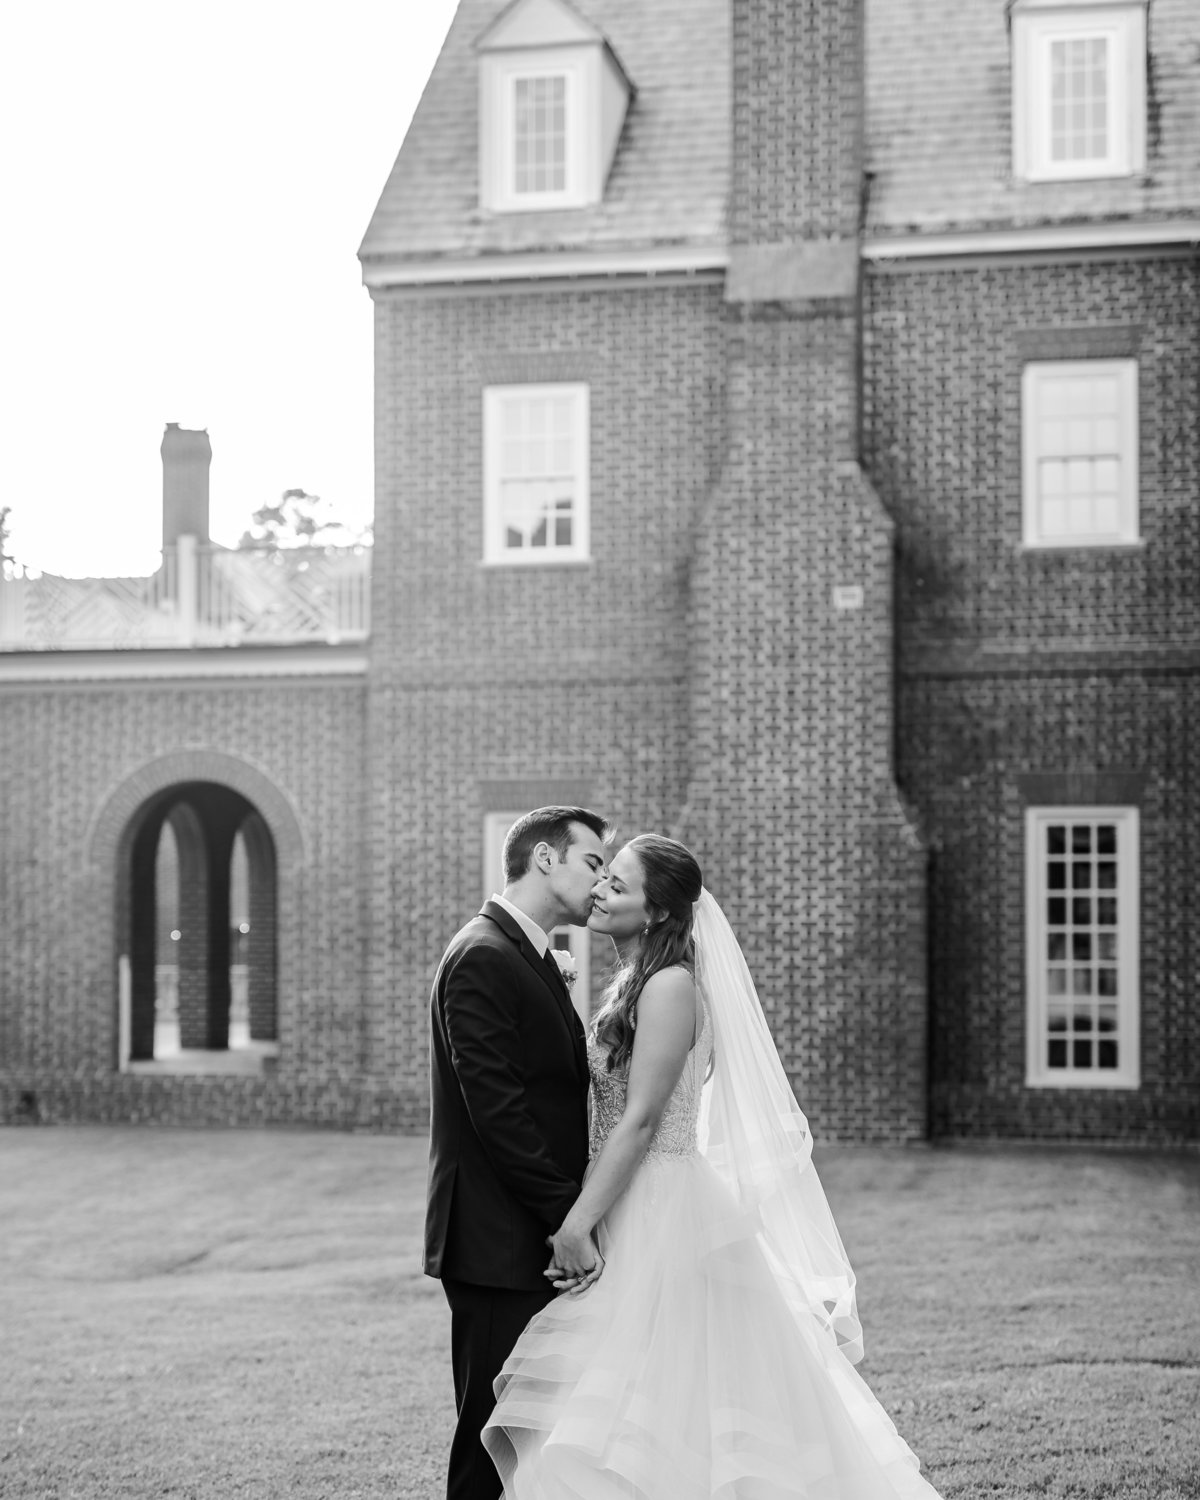 meghan lupyan hampton roads wedding photographer148